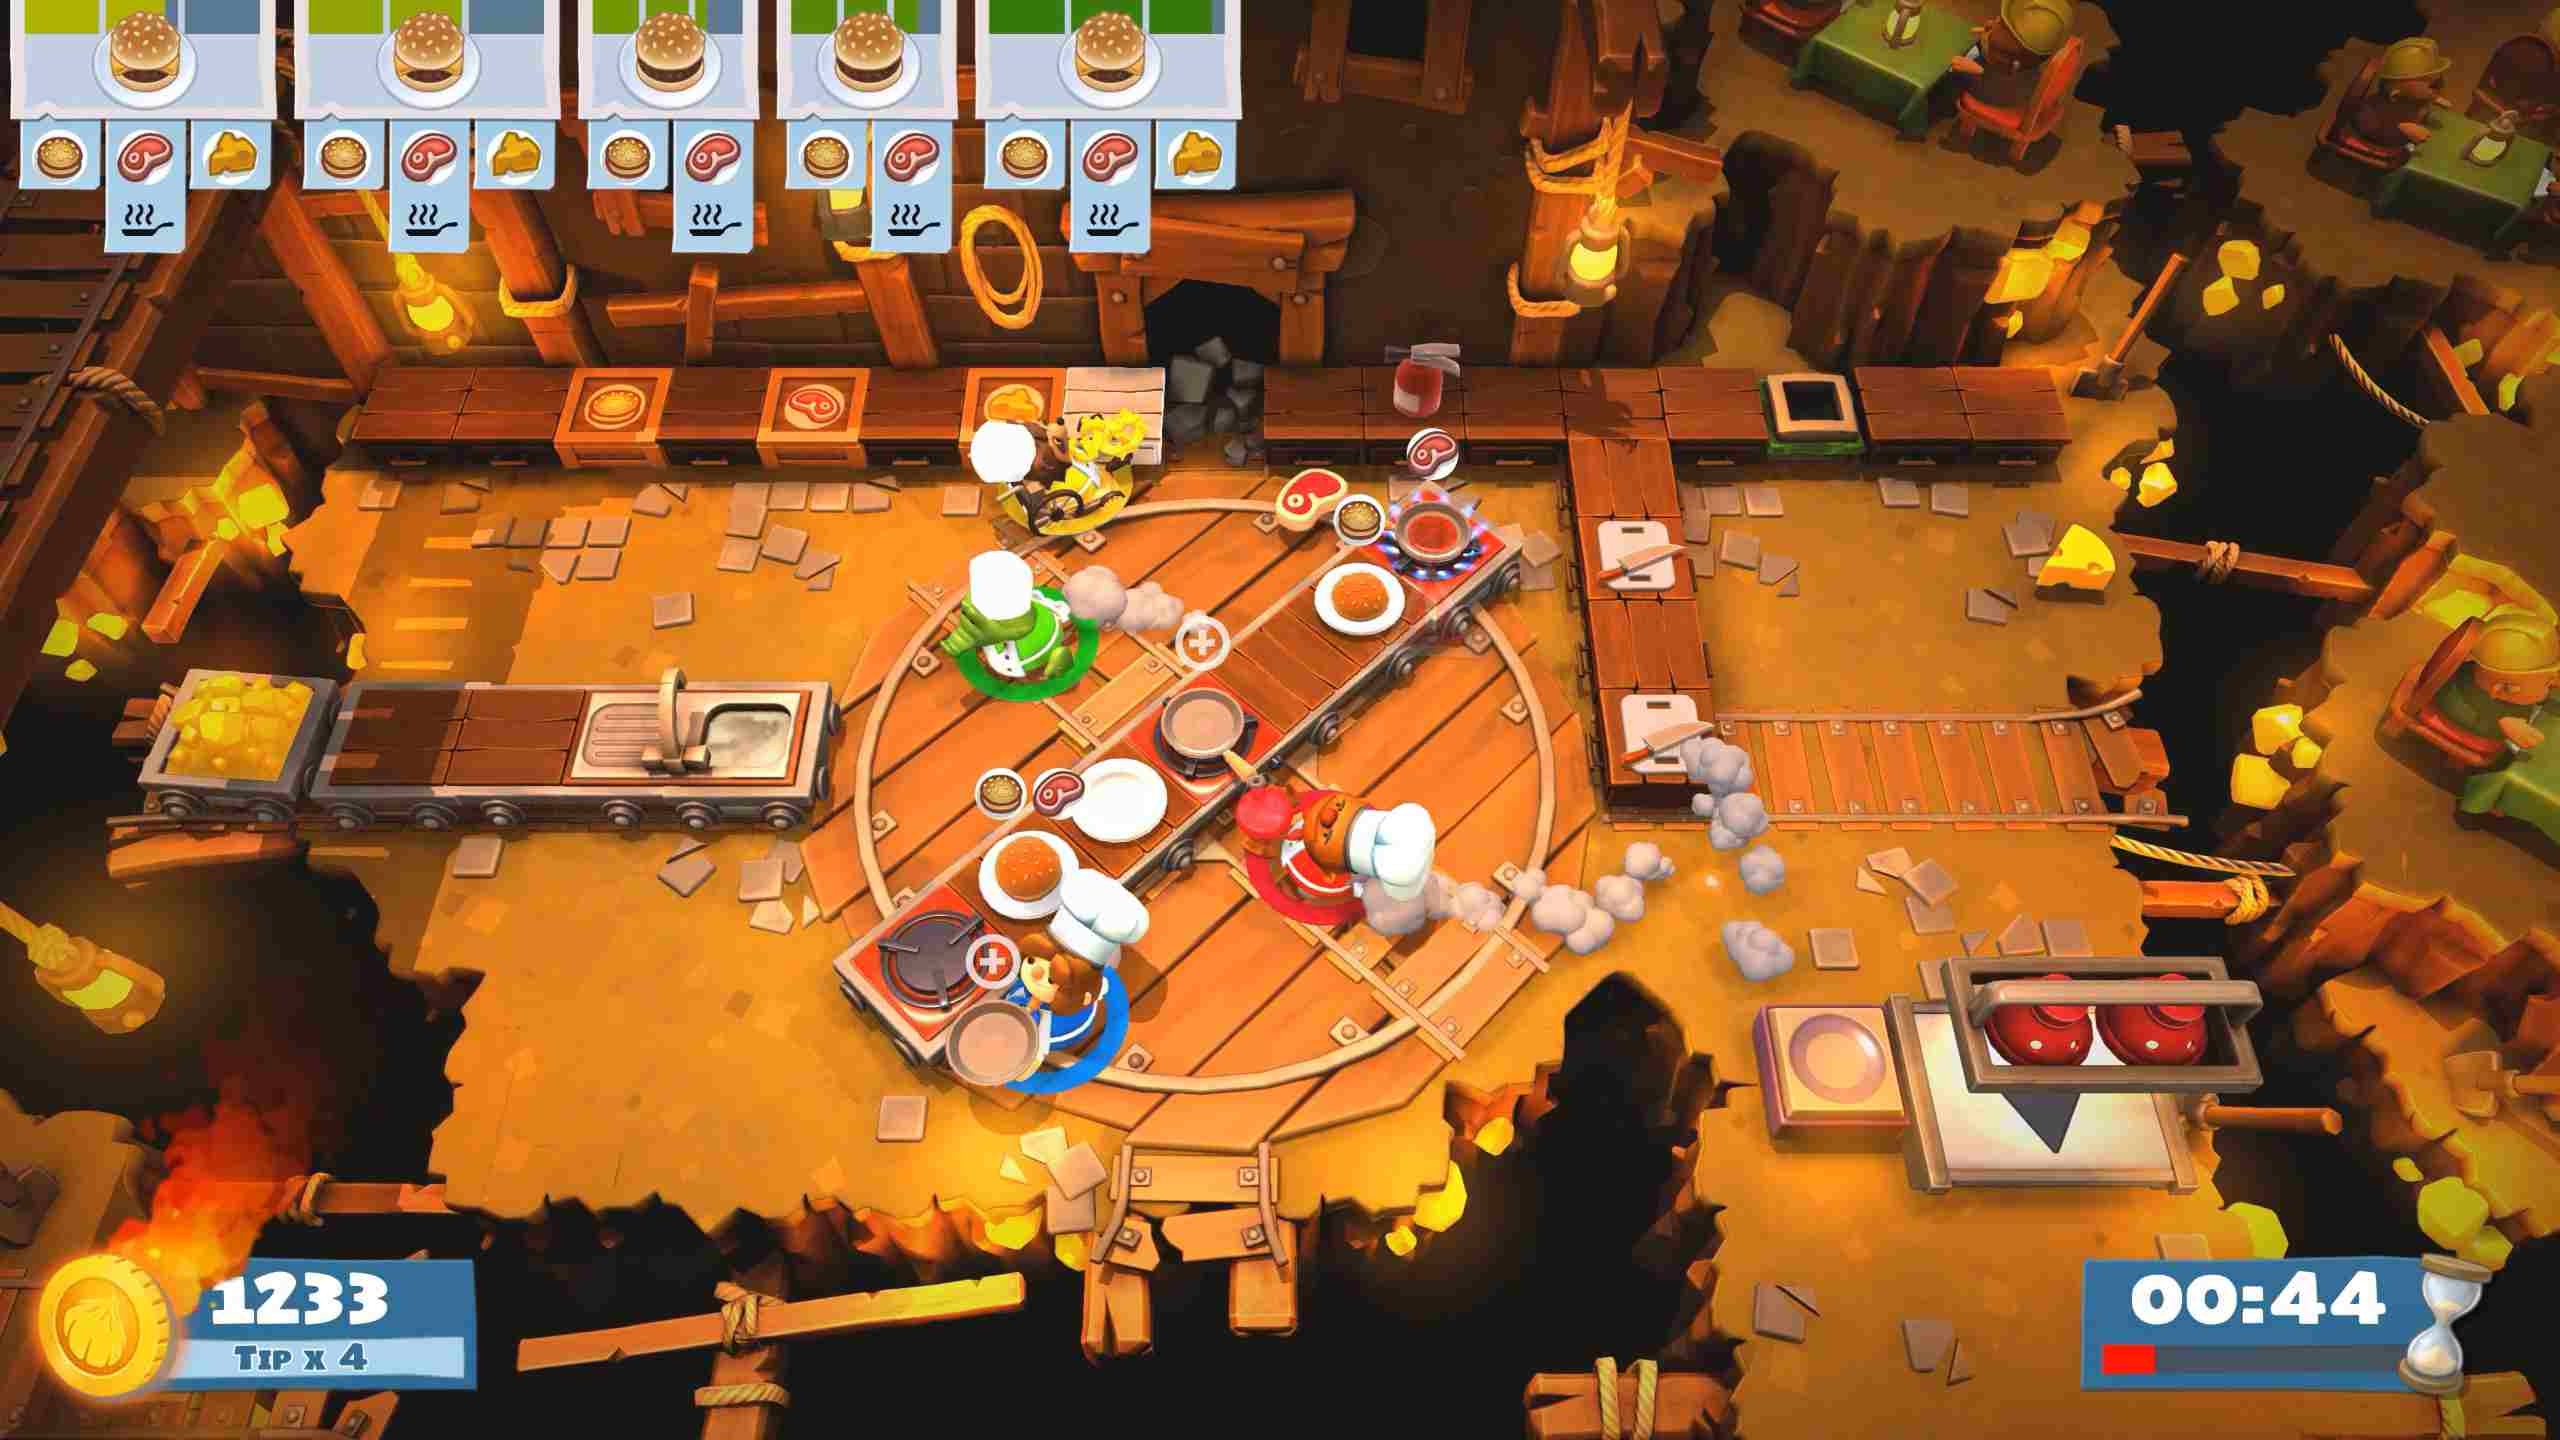 Promotional image for Overcooked! 2